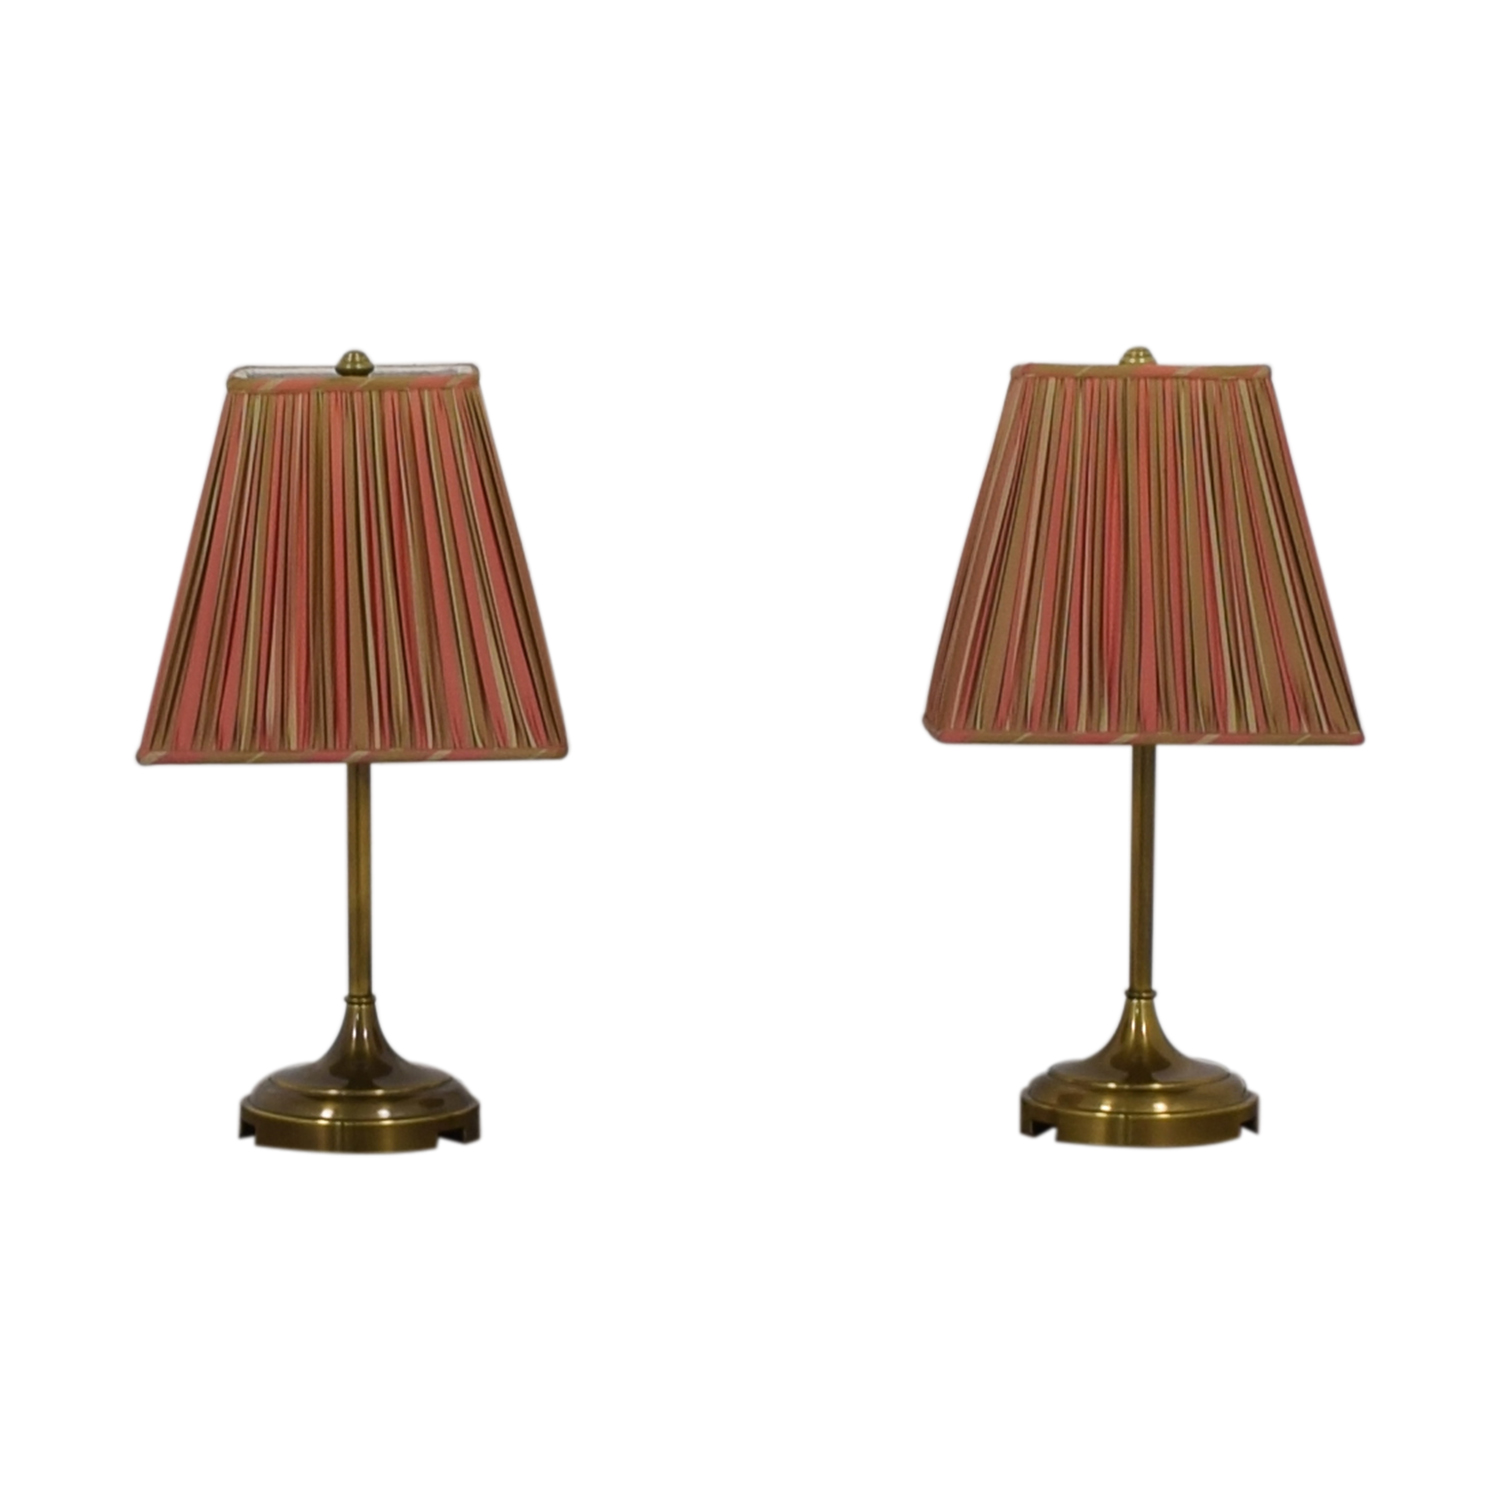 Pottery Barn Pottery Barn Striped Shade Brass Lamps used